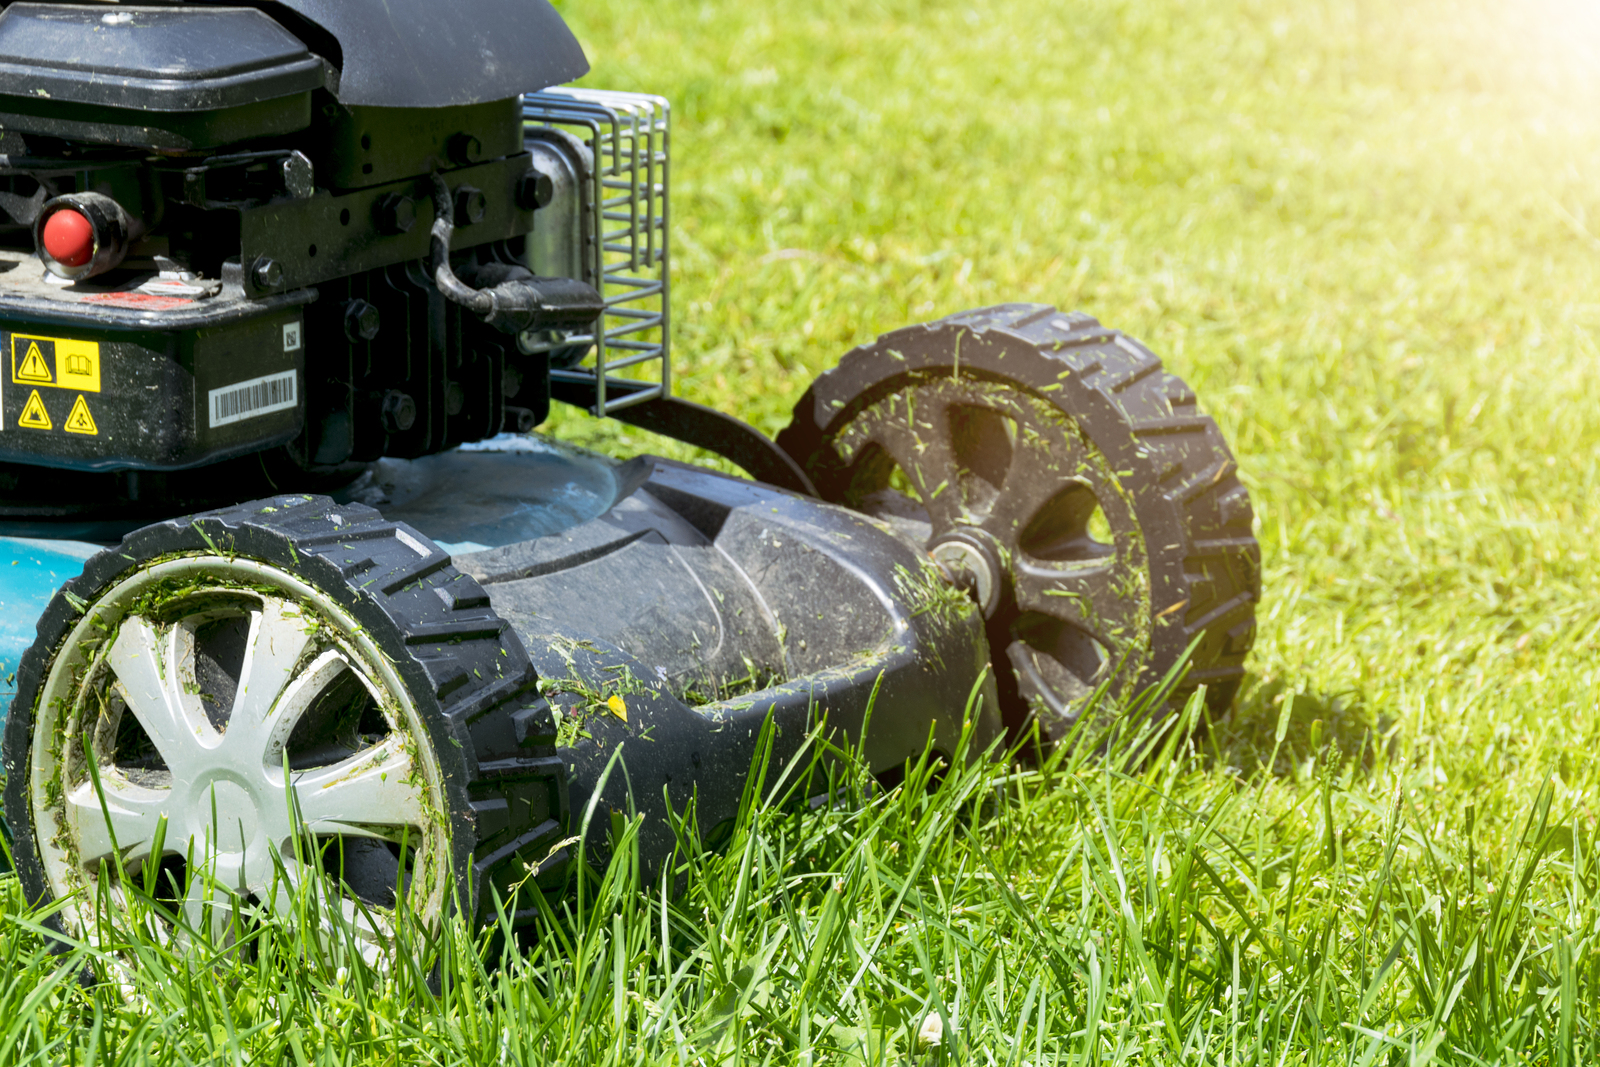 GreenPal matches homeowners with lawn care services